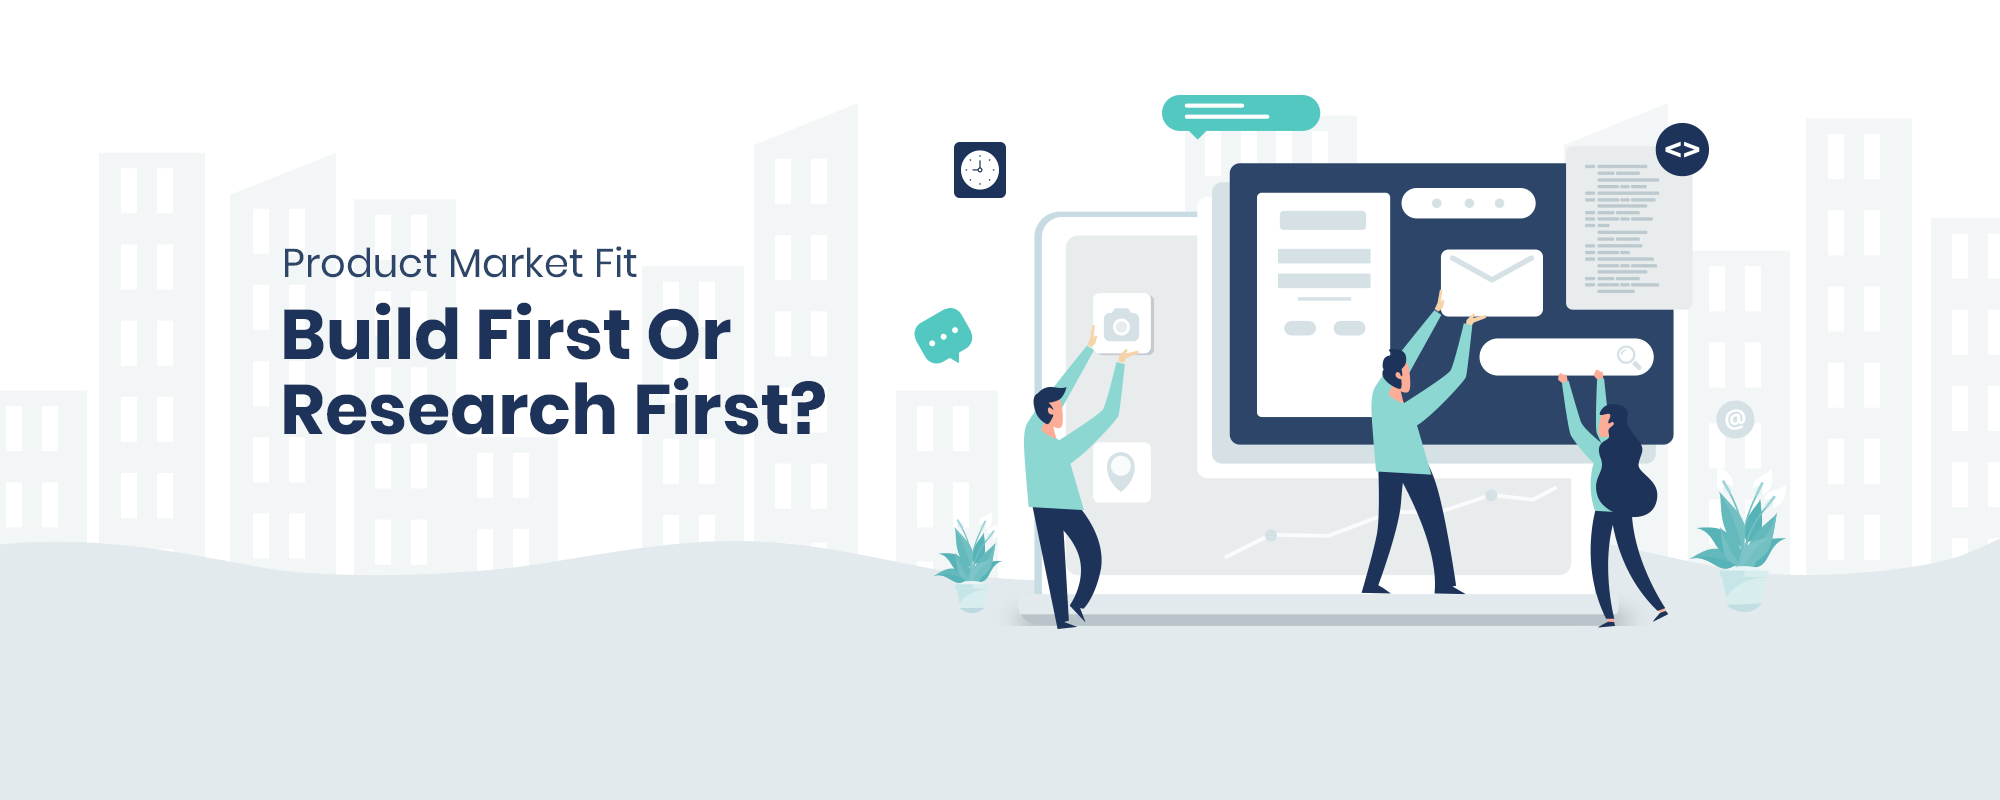 Product Market Fit – Build First or Research First?